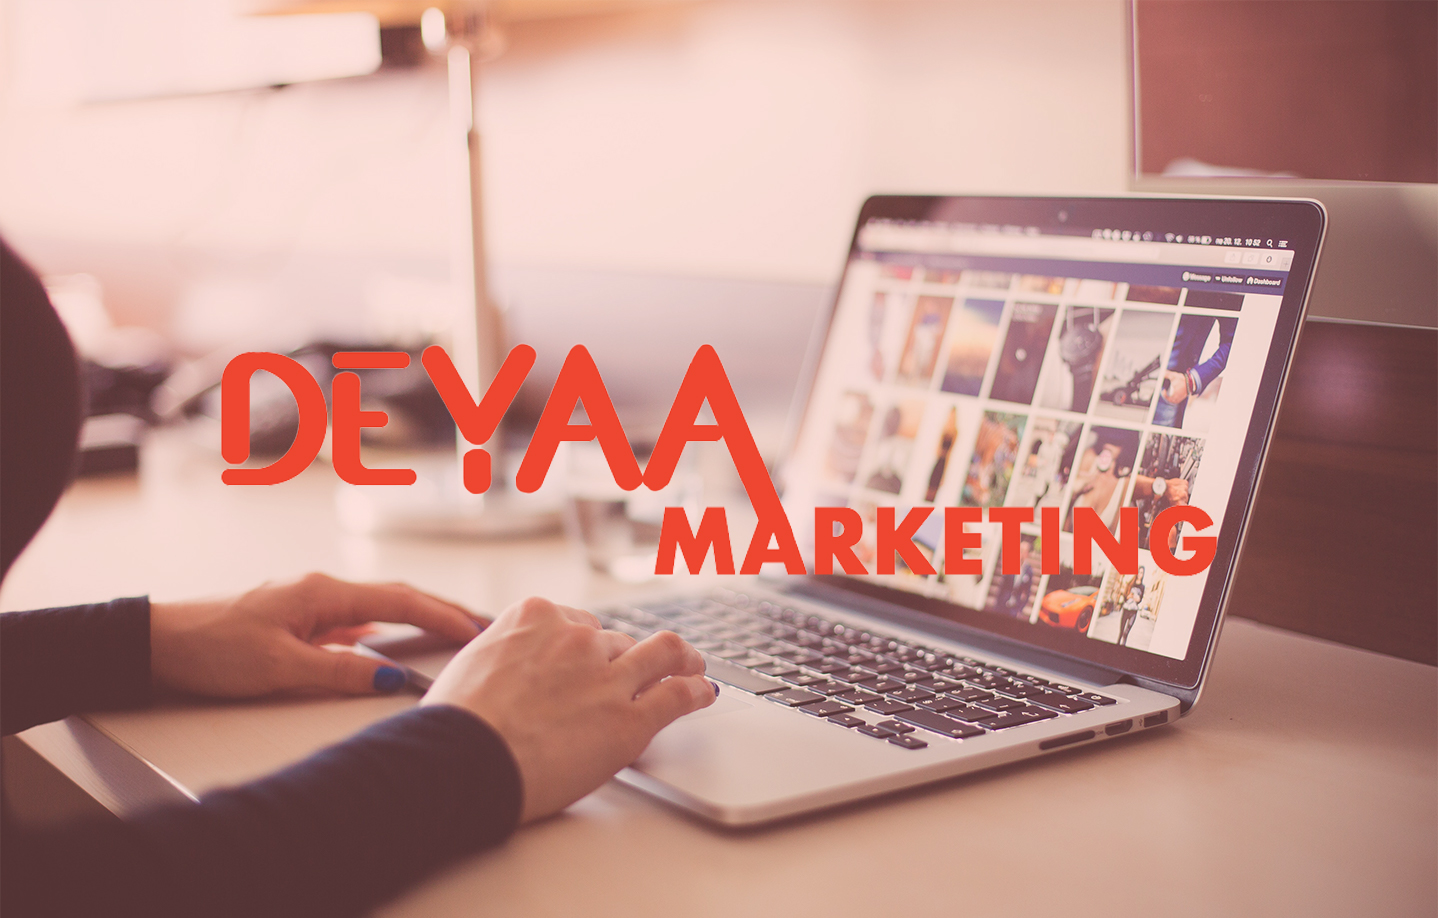 Deyaa Marketing